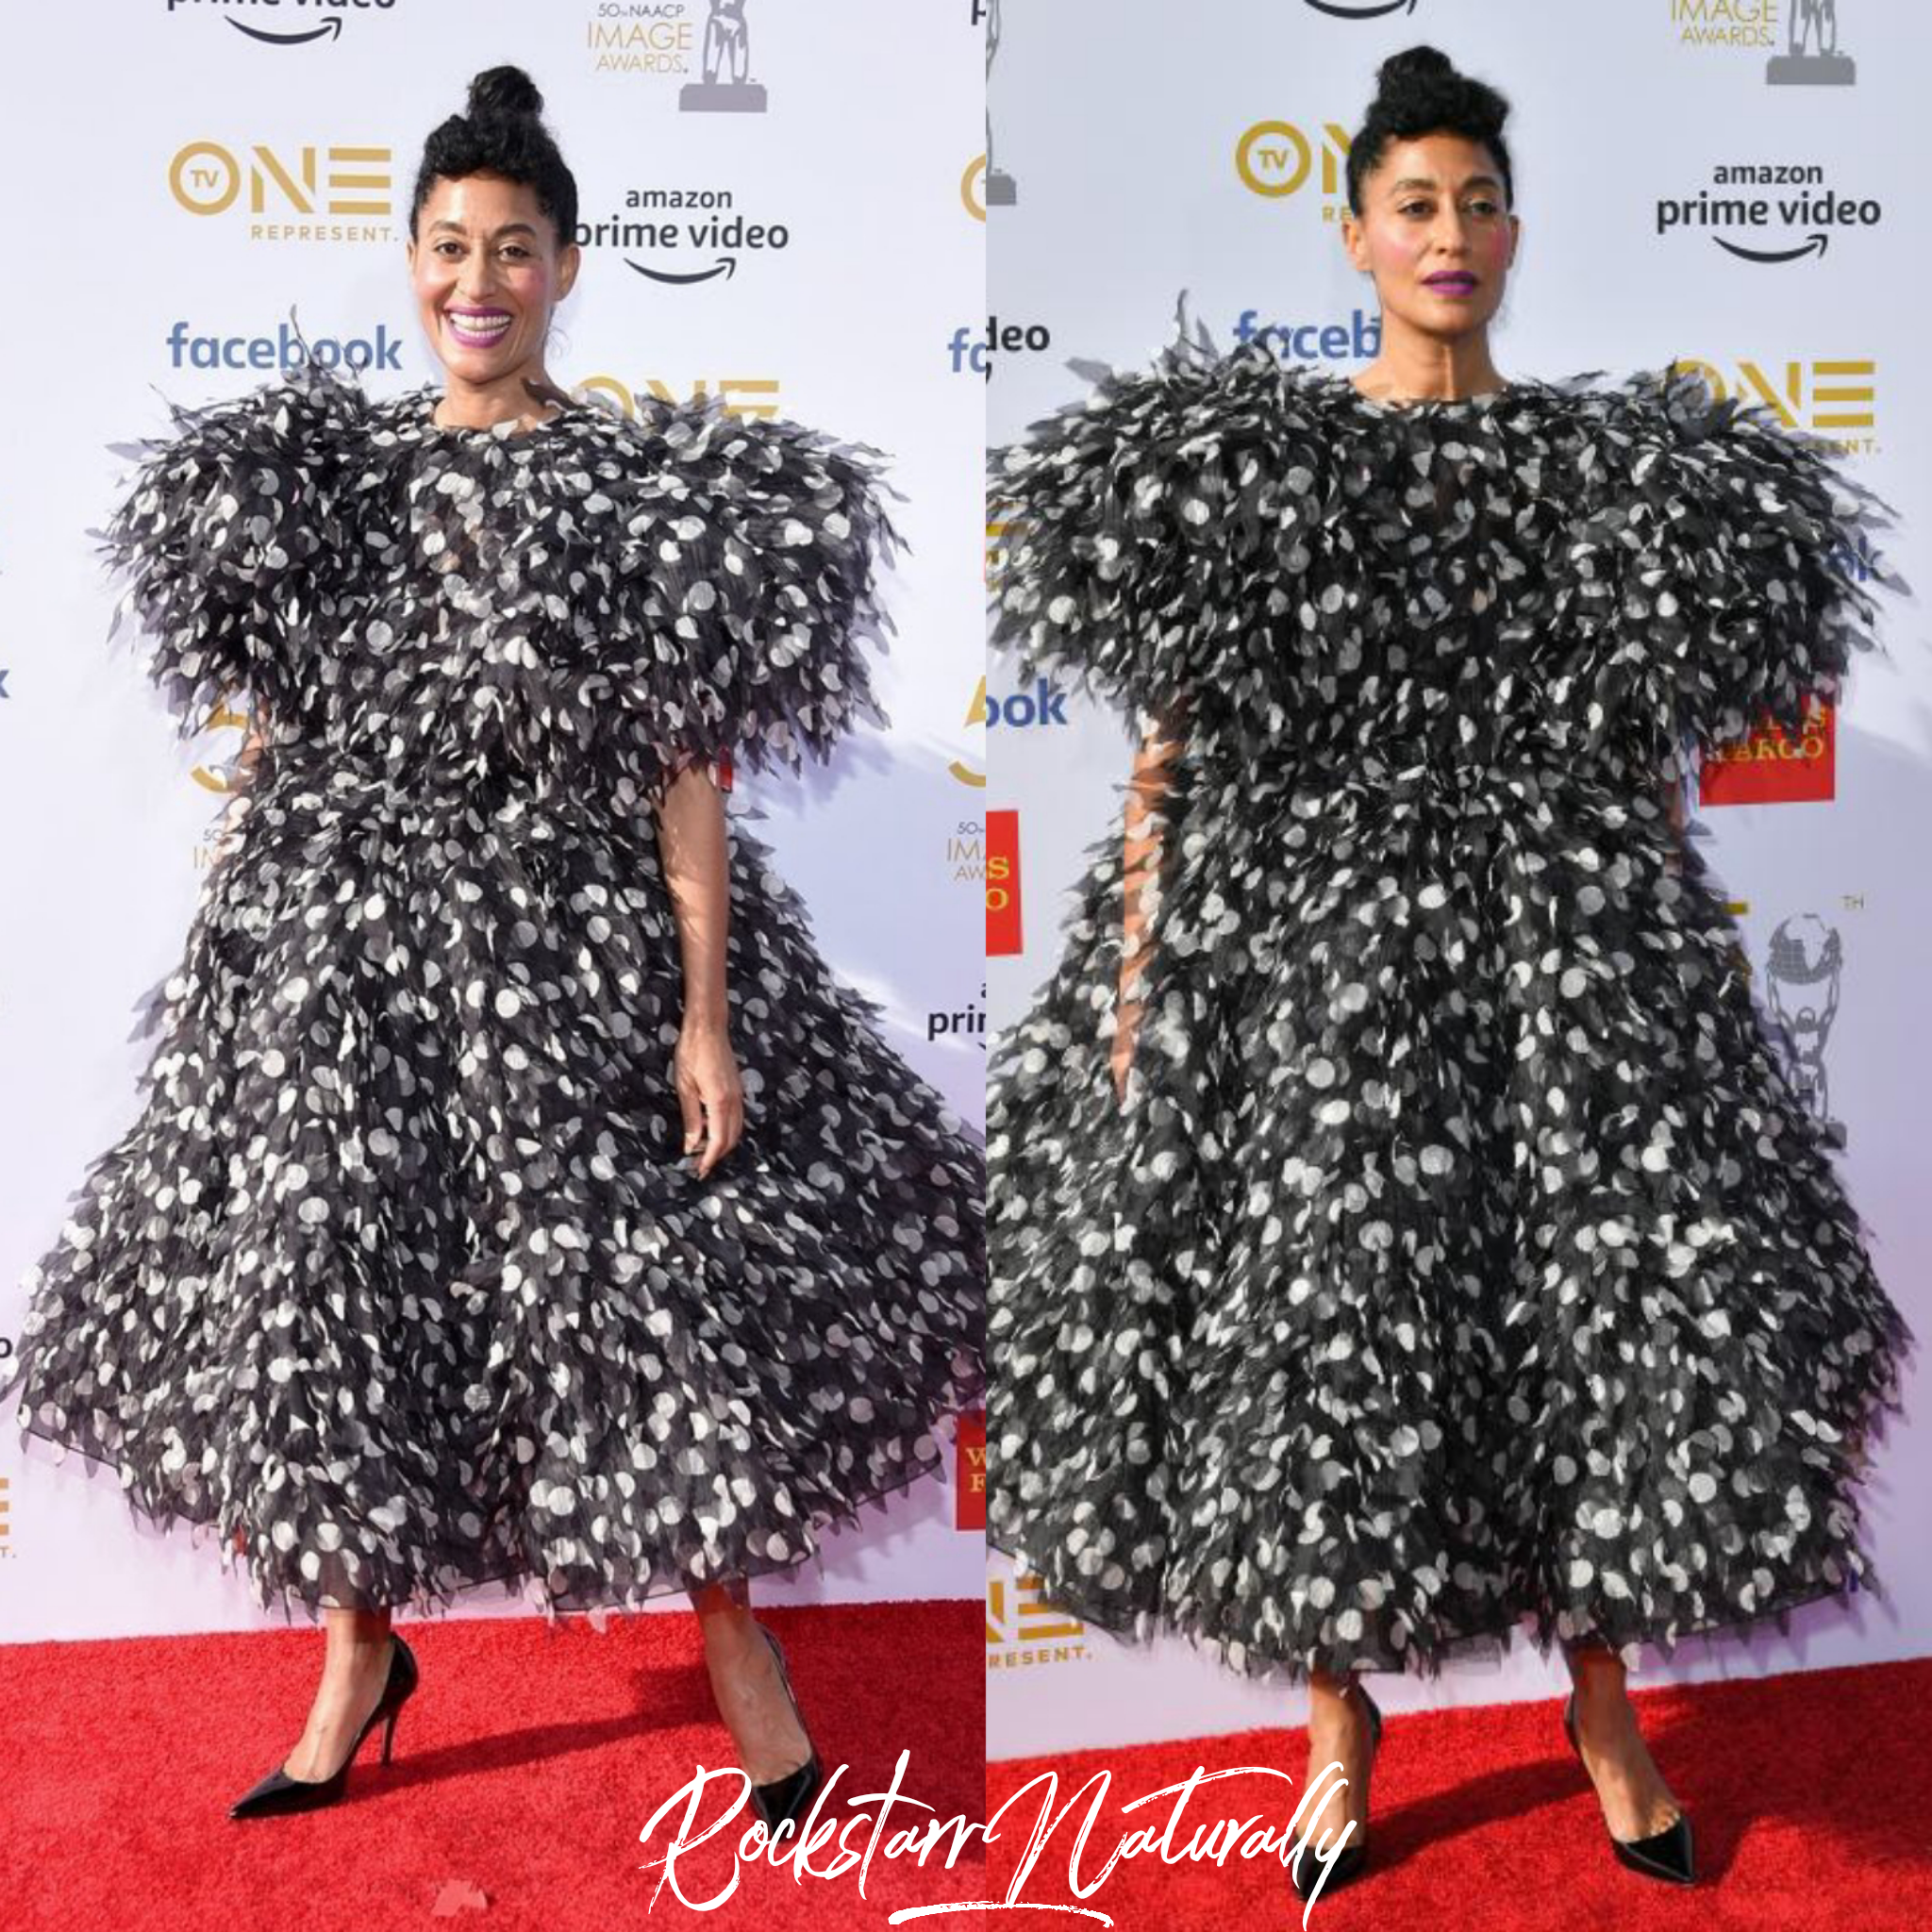 TRACEE ELLIS ROSS - In Marc Jacobs